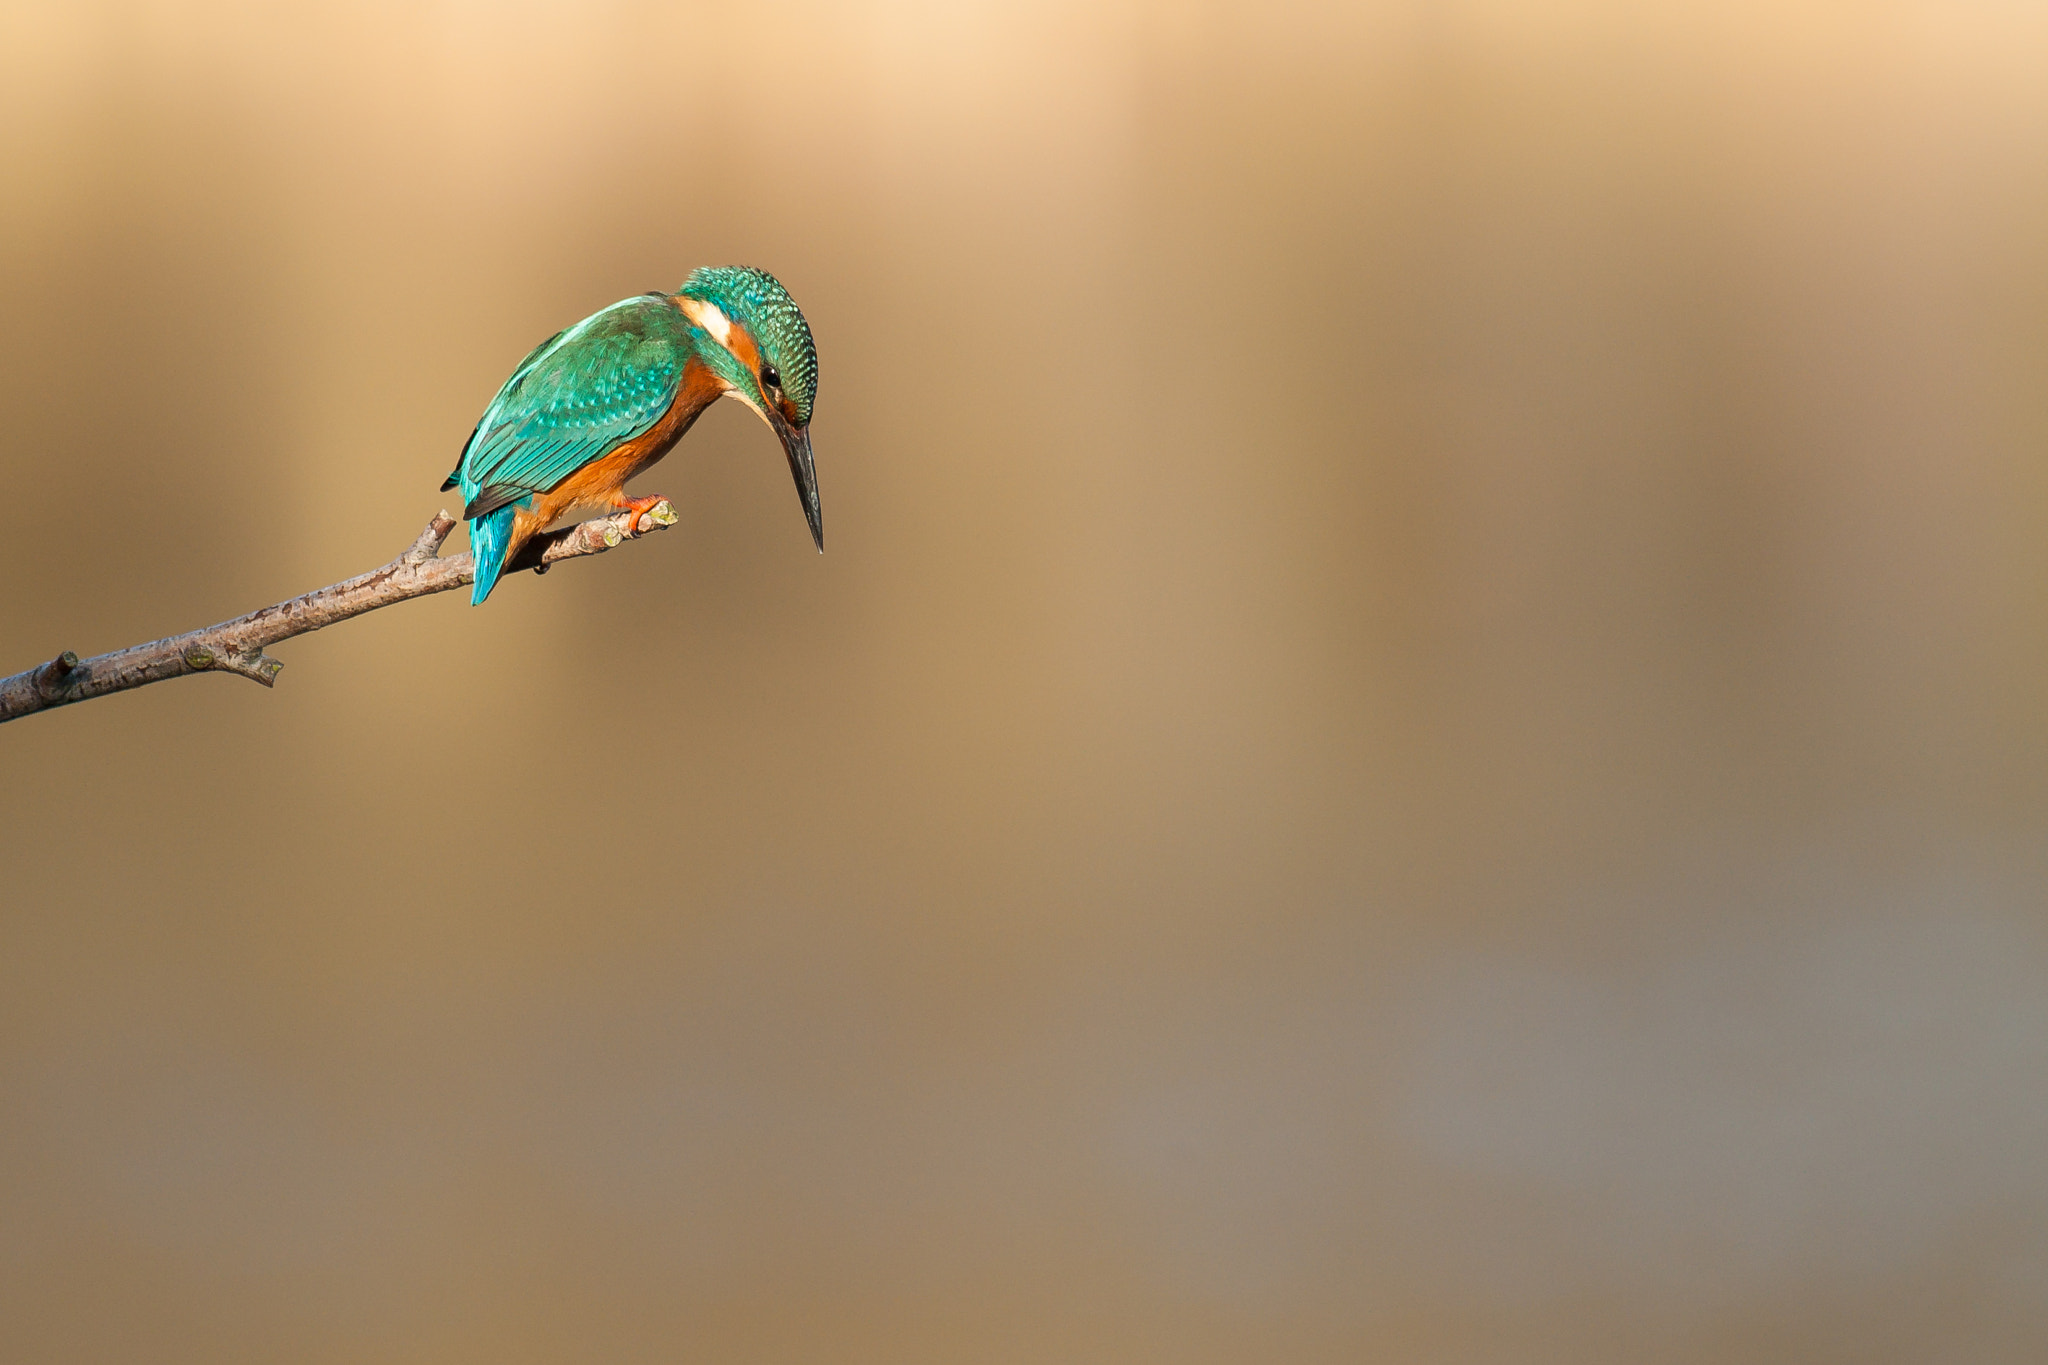 Photograph Fishing on a sunny day by Heikki Put on 500px